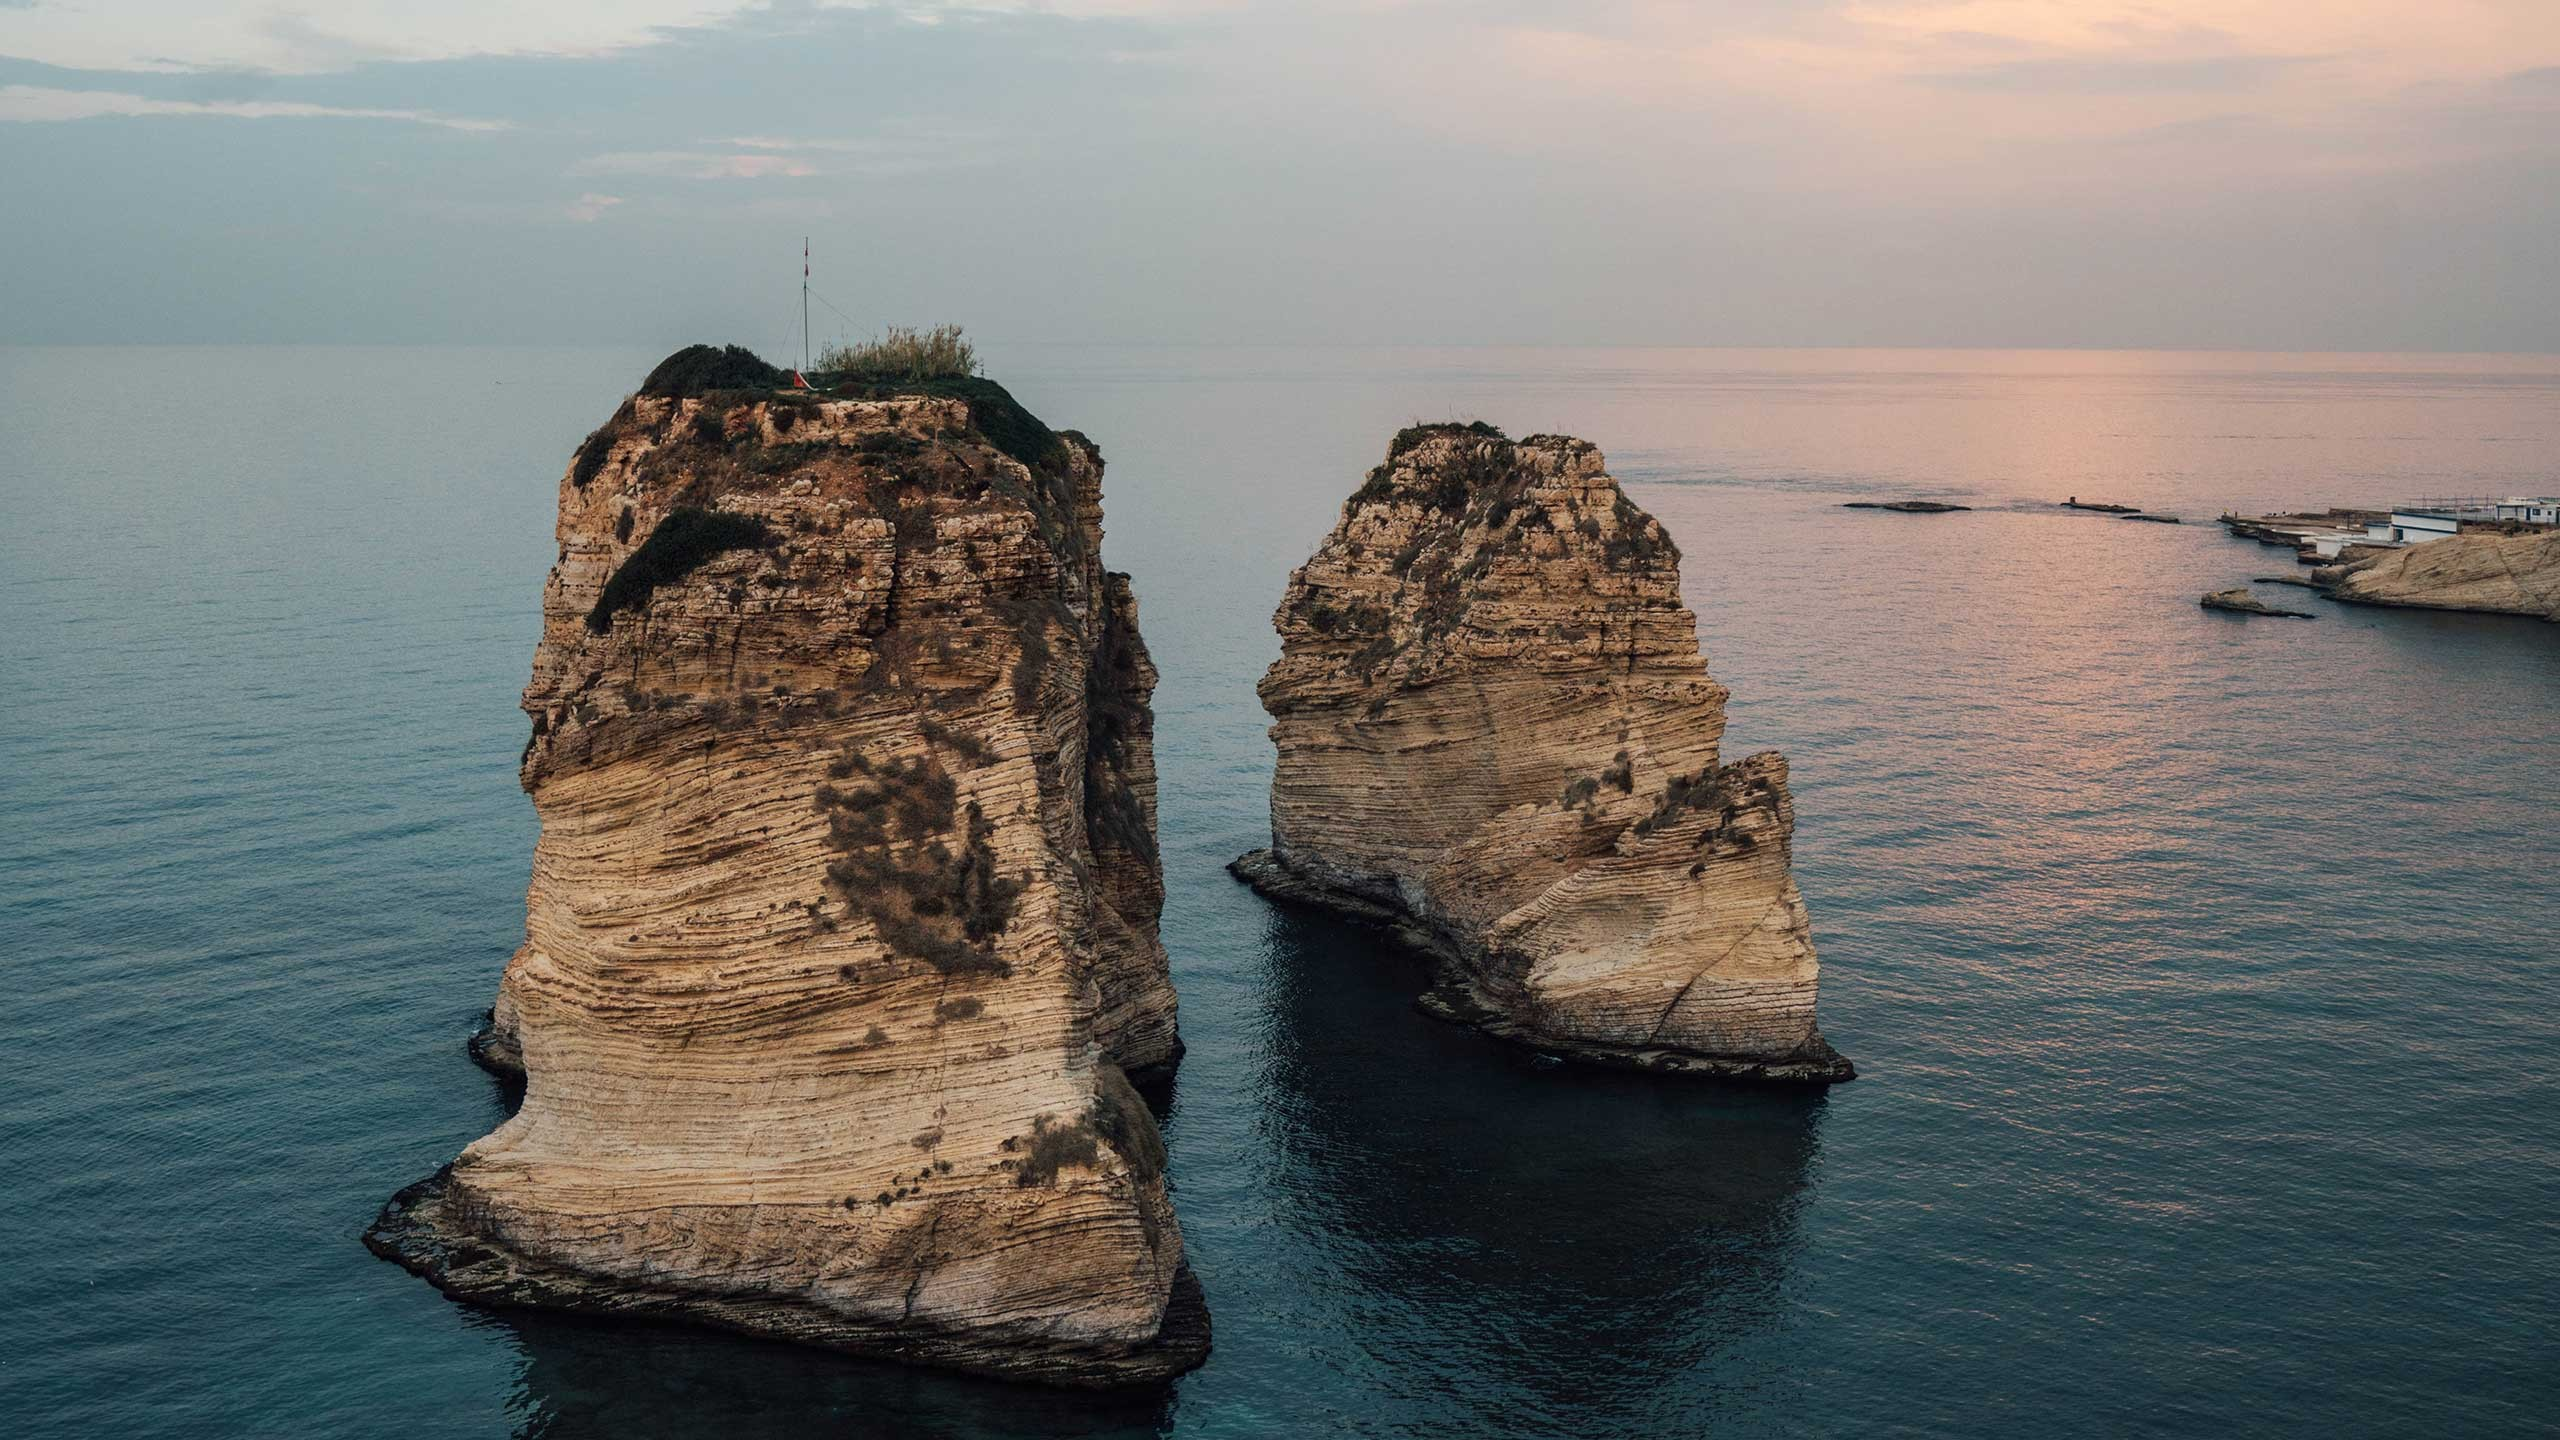 The Raouché rocks in Beirut, Lebanon.